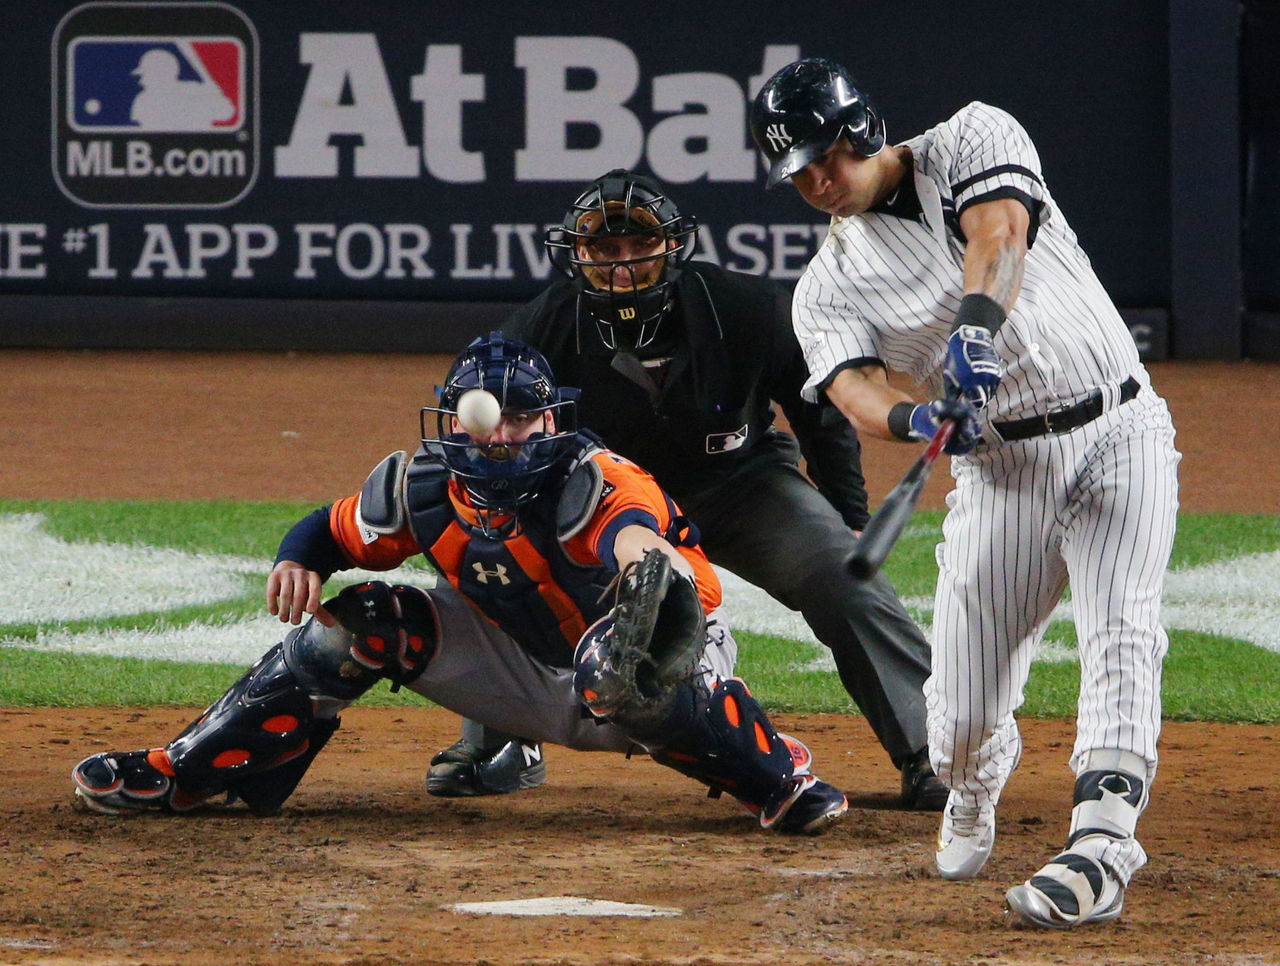 Cropped 2017 10 17t235830z 1740006849 nocid rtrmadp 3 mlb alcs houston astros at new york yankees